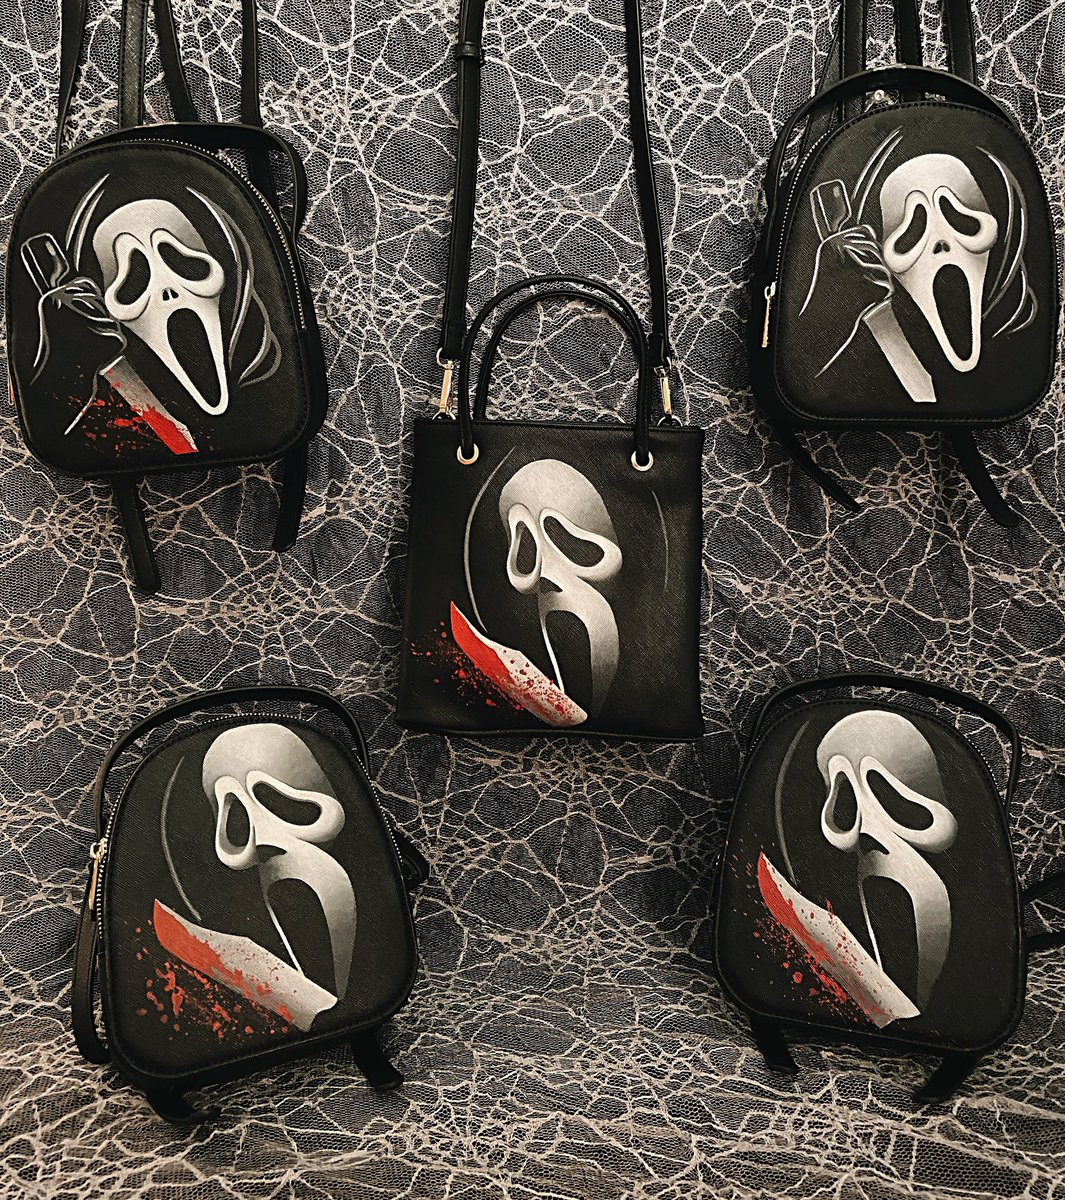 is anyone else excited for this mini Ghostface sale?  praying the rest of my bags come in so I can paint a few more  these are hand painted so they are all unique :) #horror #HorrorCommunity #horrorart #horrorfam pic.twitter.com/31mFDzUIUo